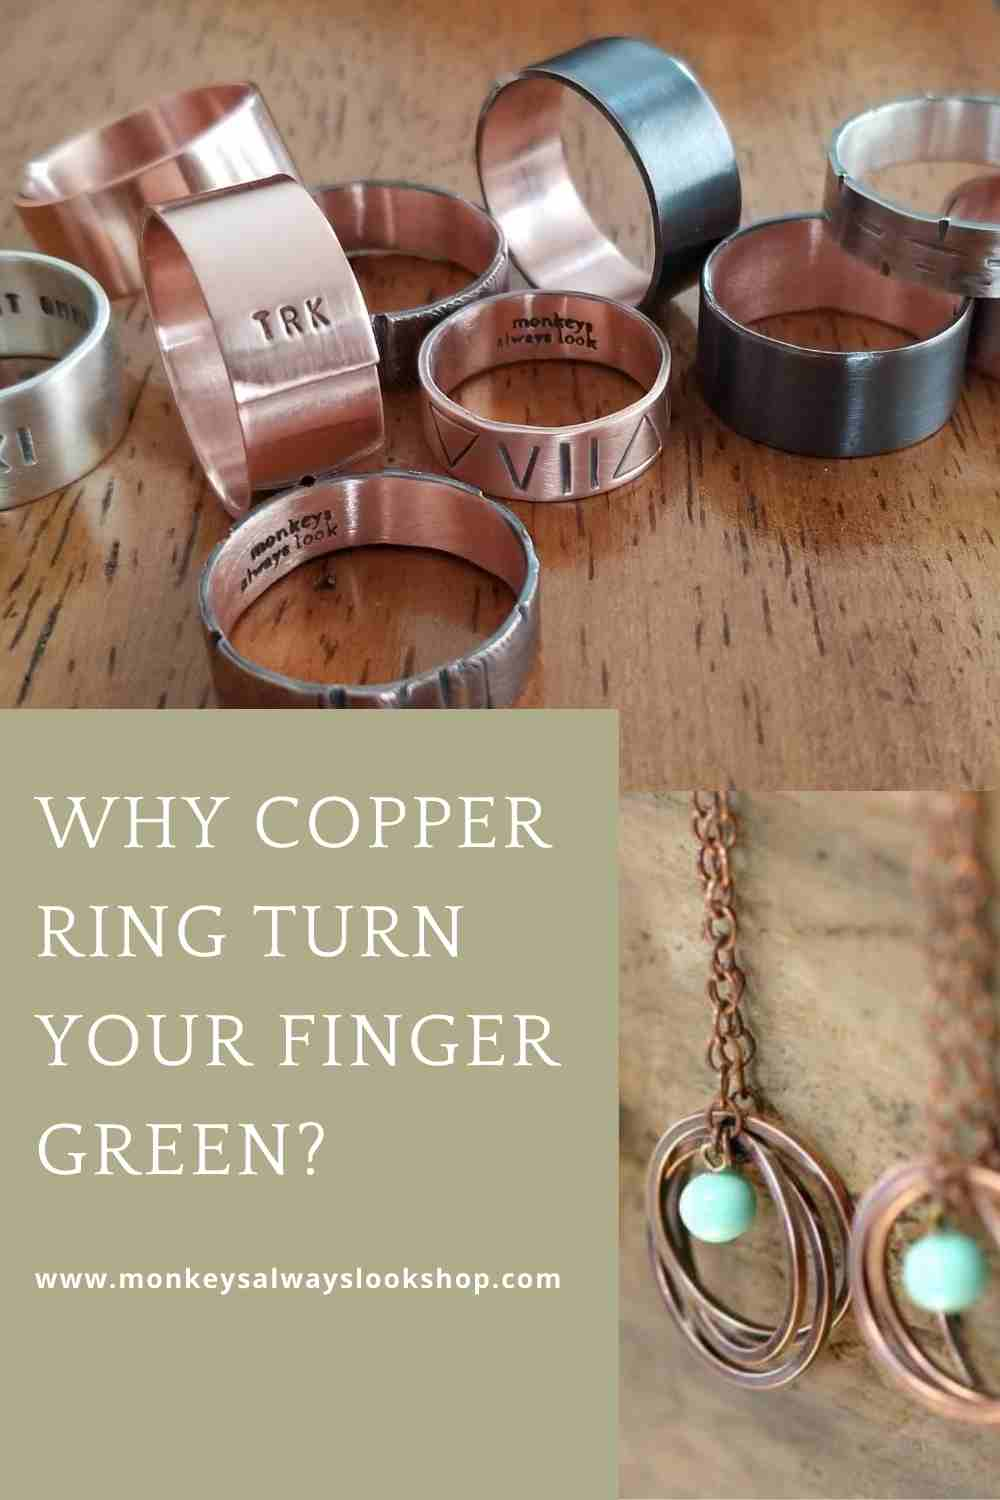 Why copper ring turn your finger green